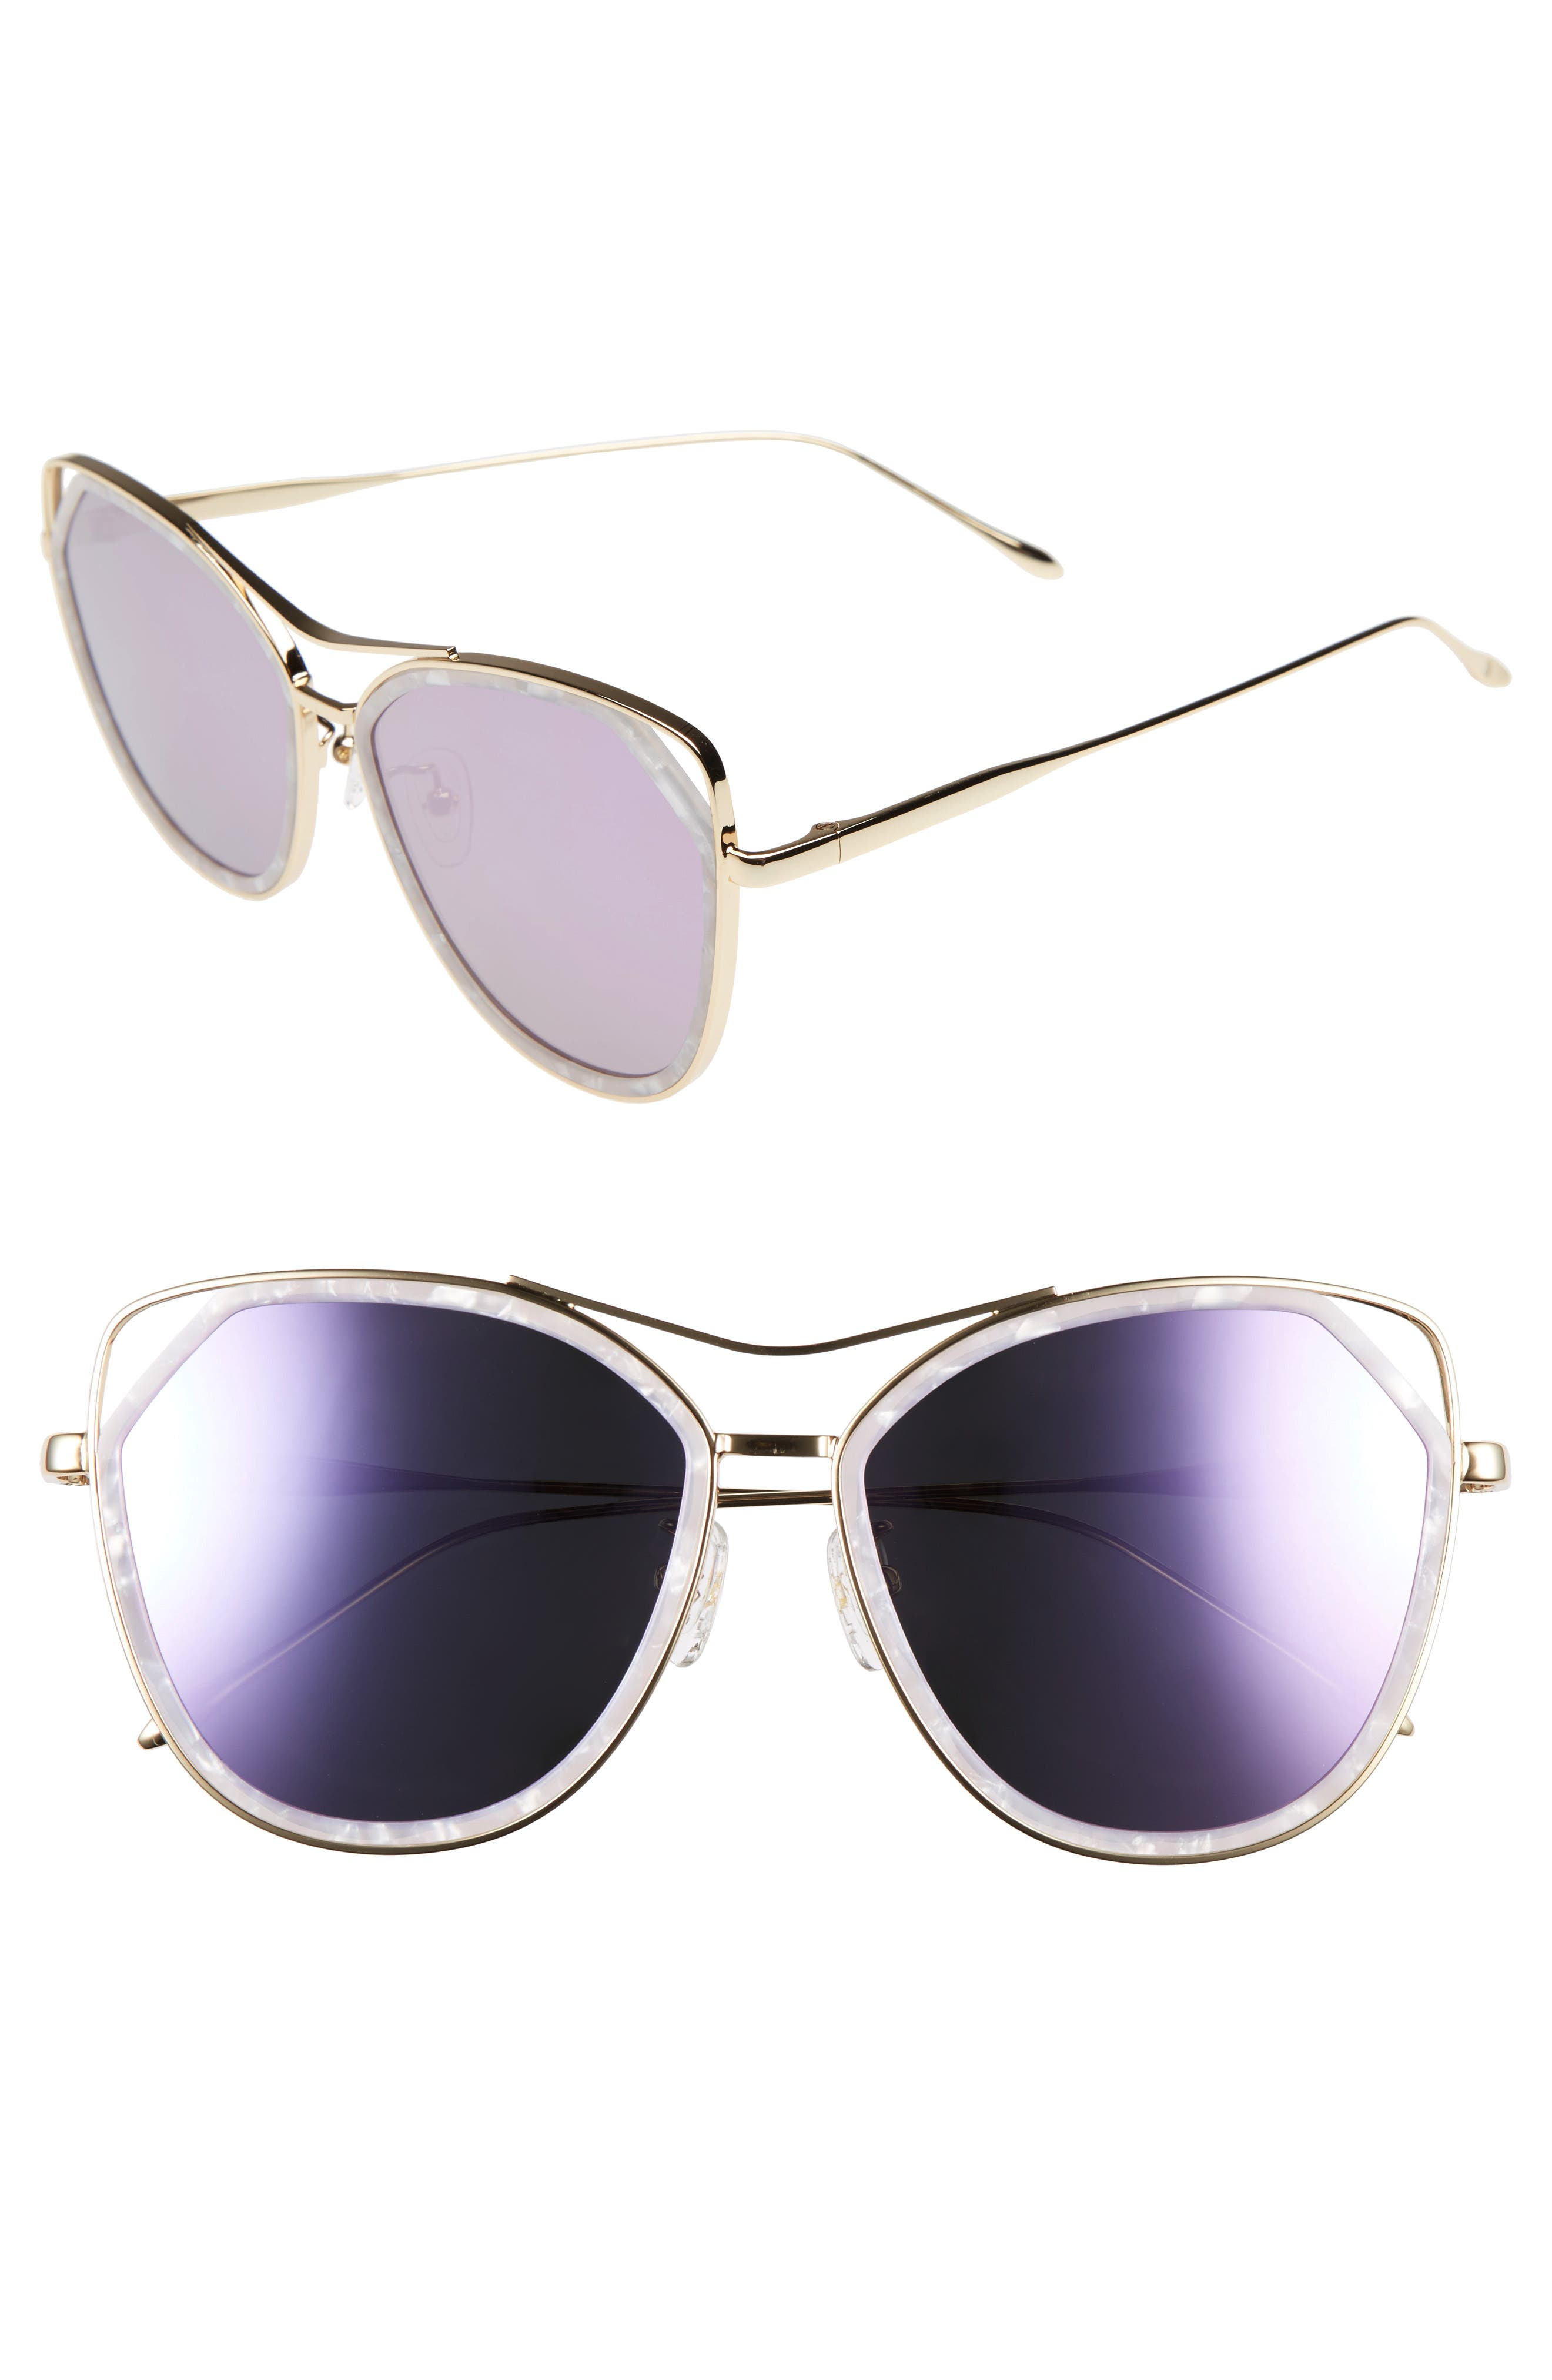 Bonnie Clyde Grand 56mm Polarized Cat Eye Sunglasses